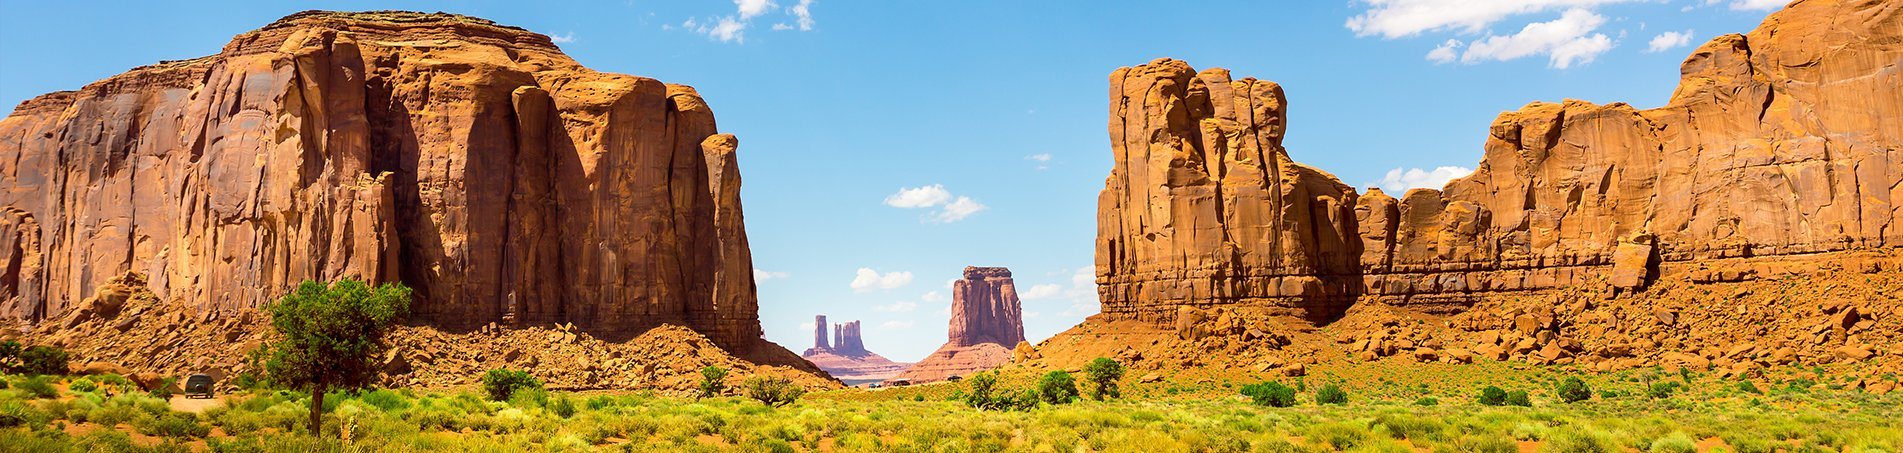 Monument Valley in Amerika